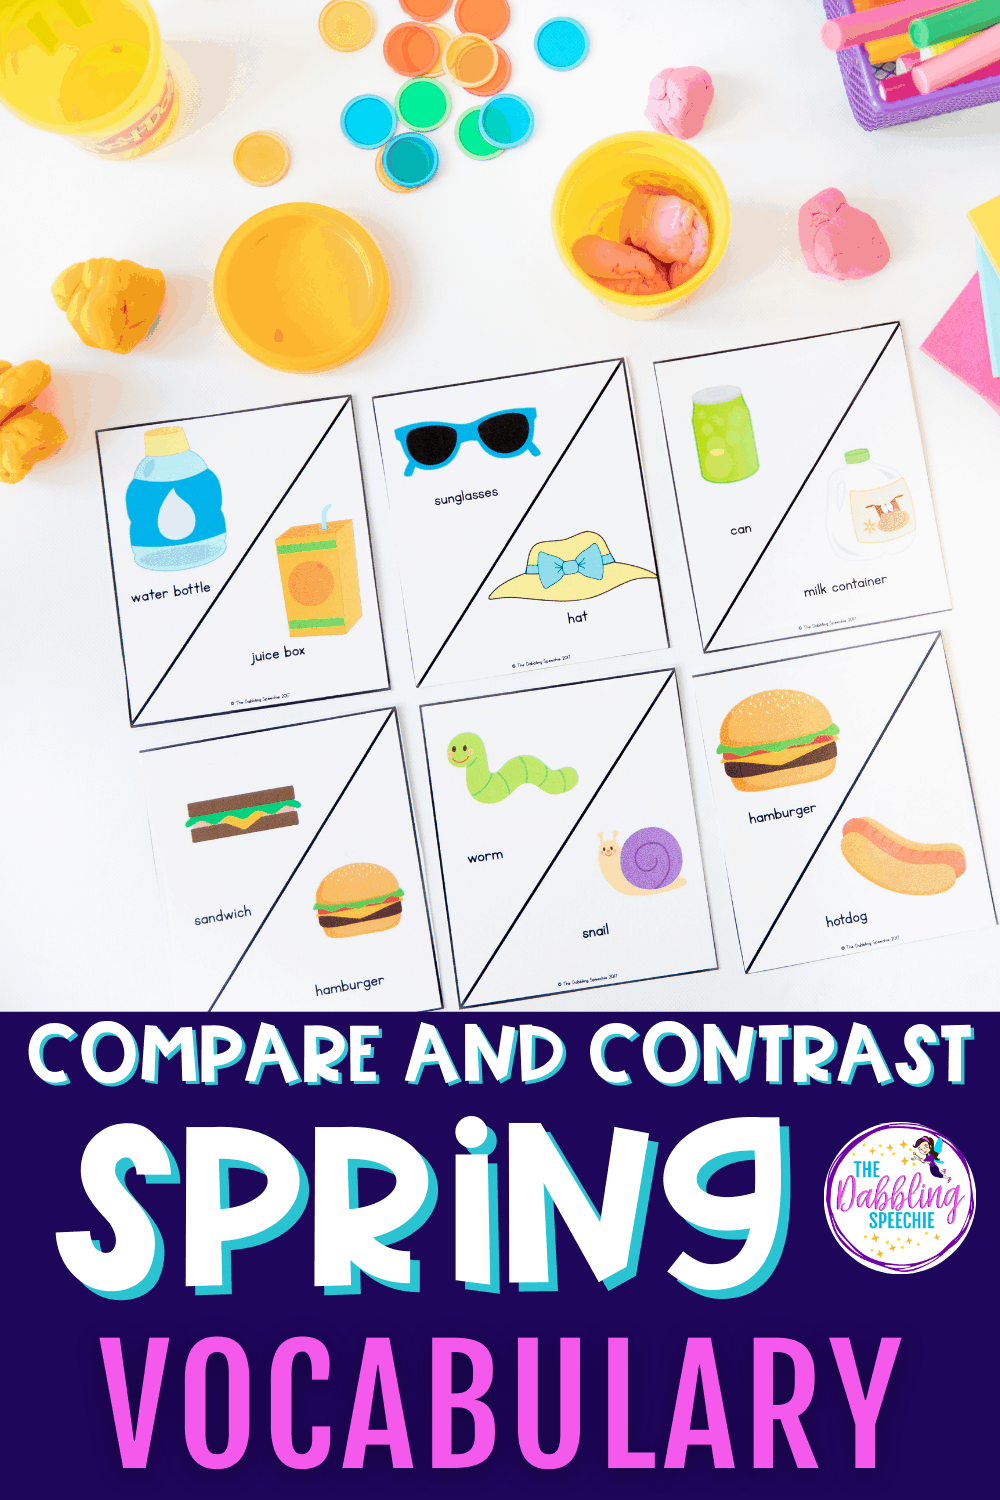 Use spring vocabulary to teach transition words while comparing and contrasting nouns